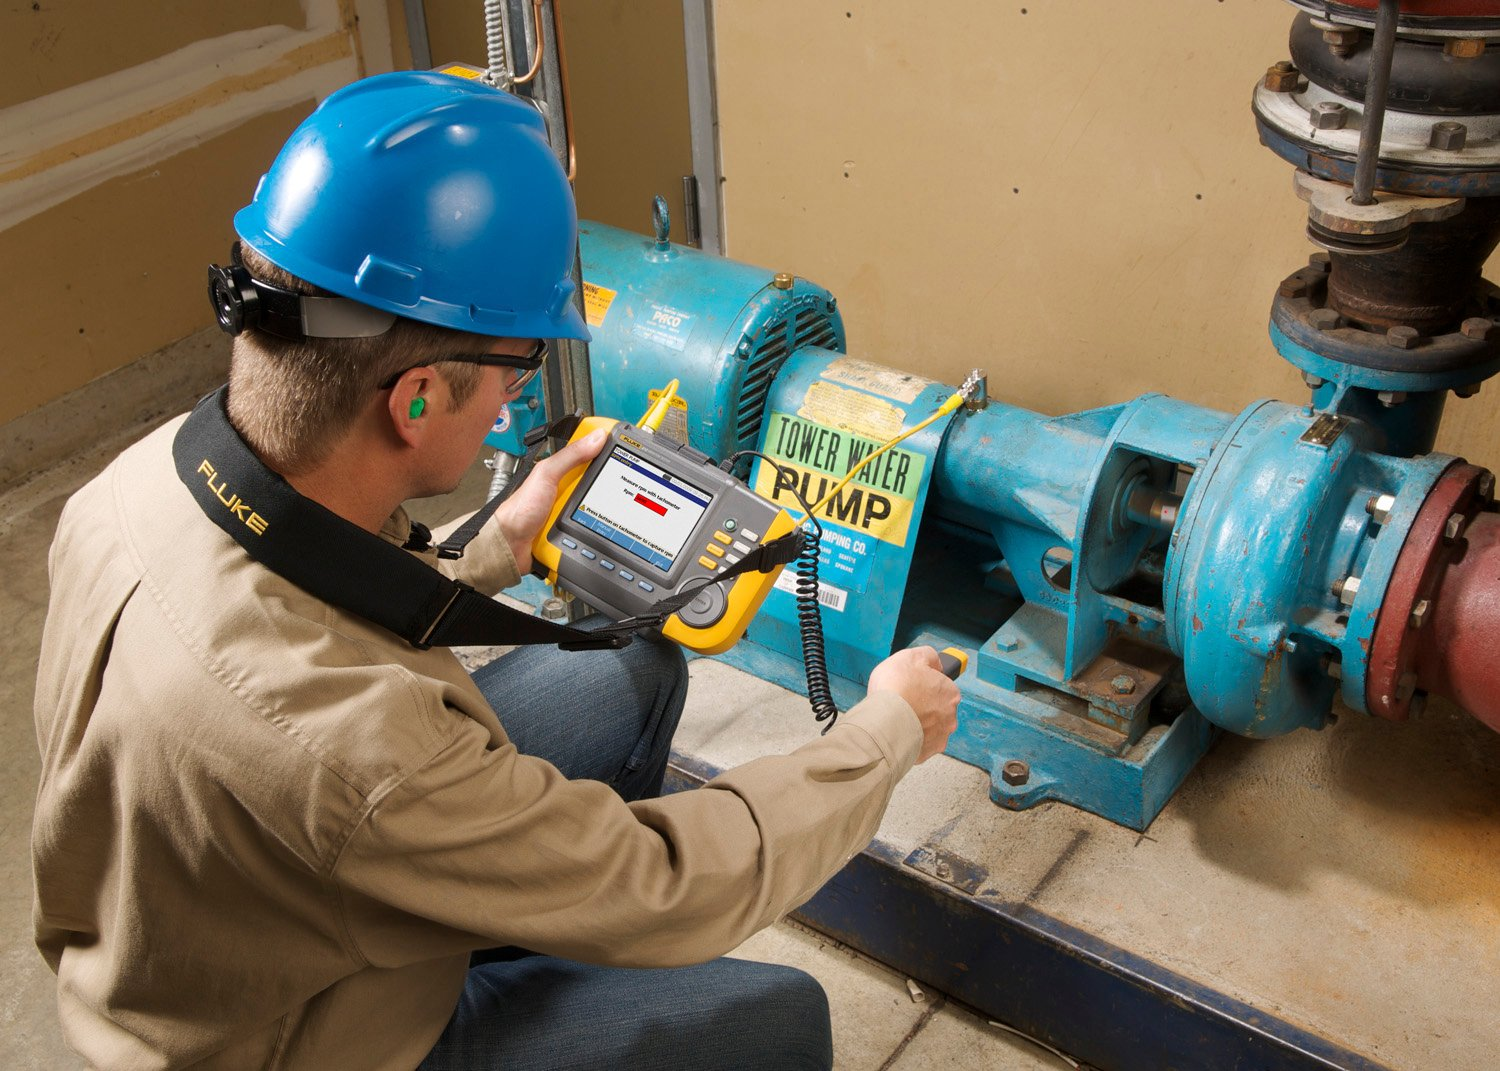 Analyzing motor vibration with the Fluke 810 handheld vibration tester